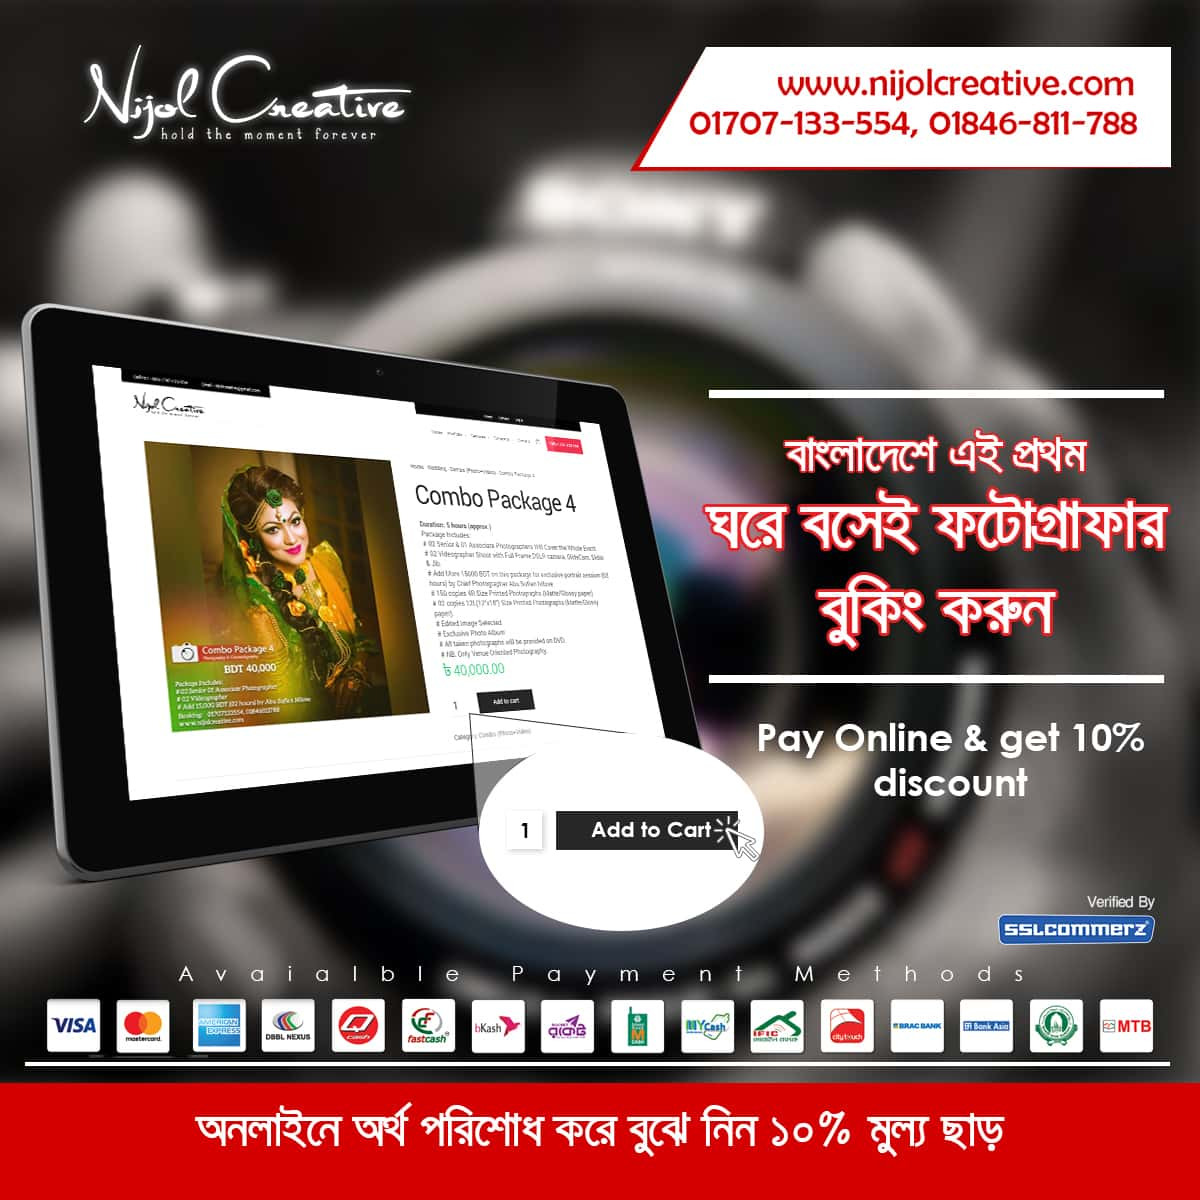 NijolCreative Photography Announces a 10% Discount on the First Ever Online Payment System in Bangladesh